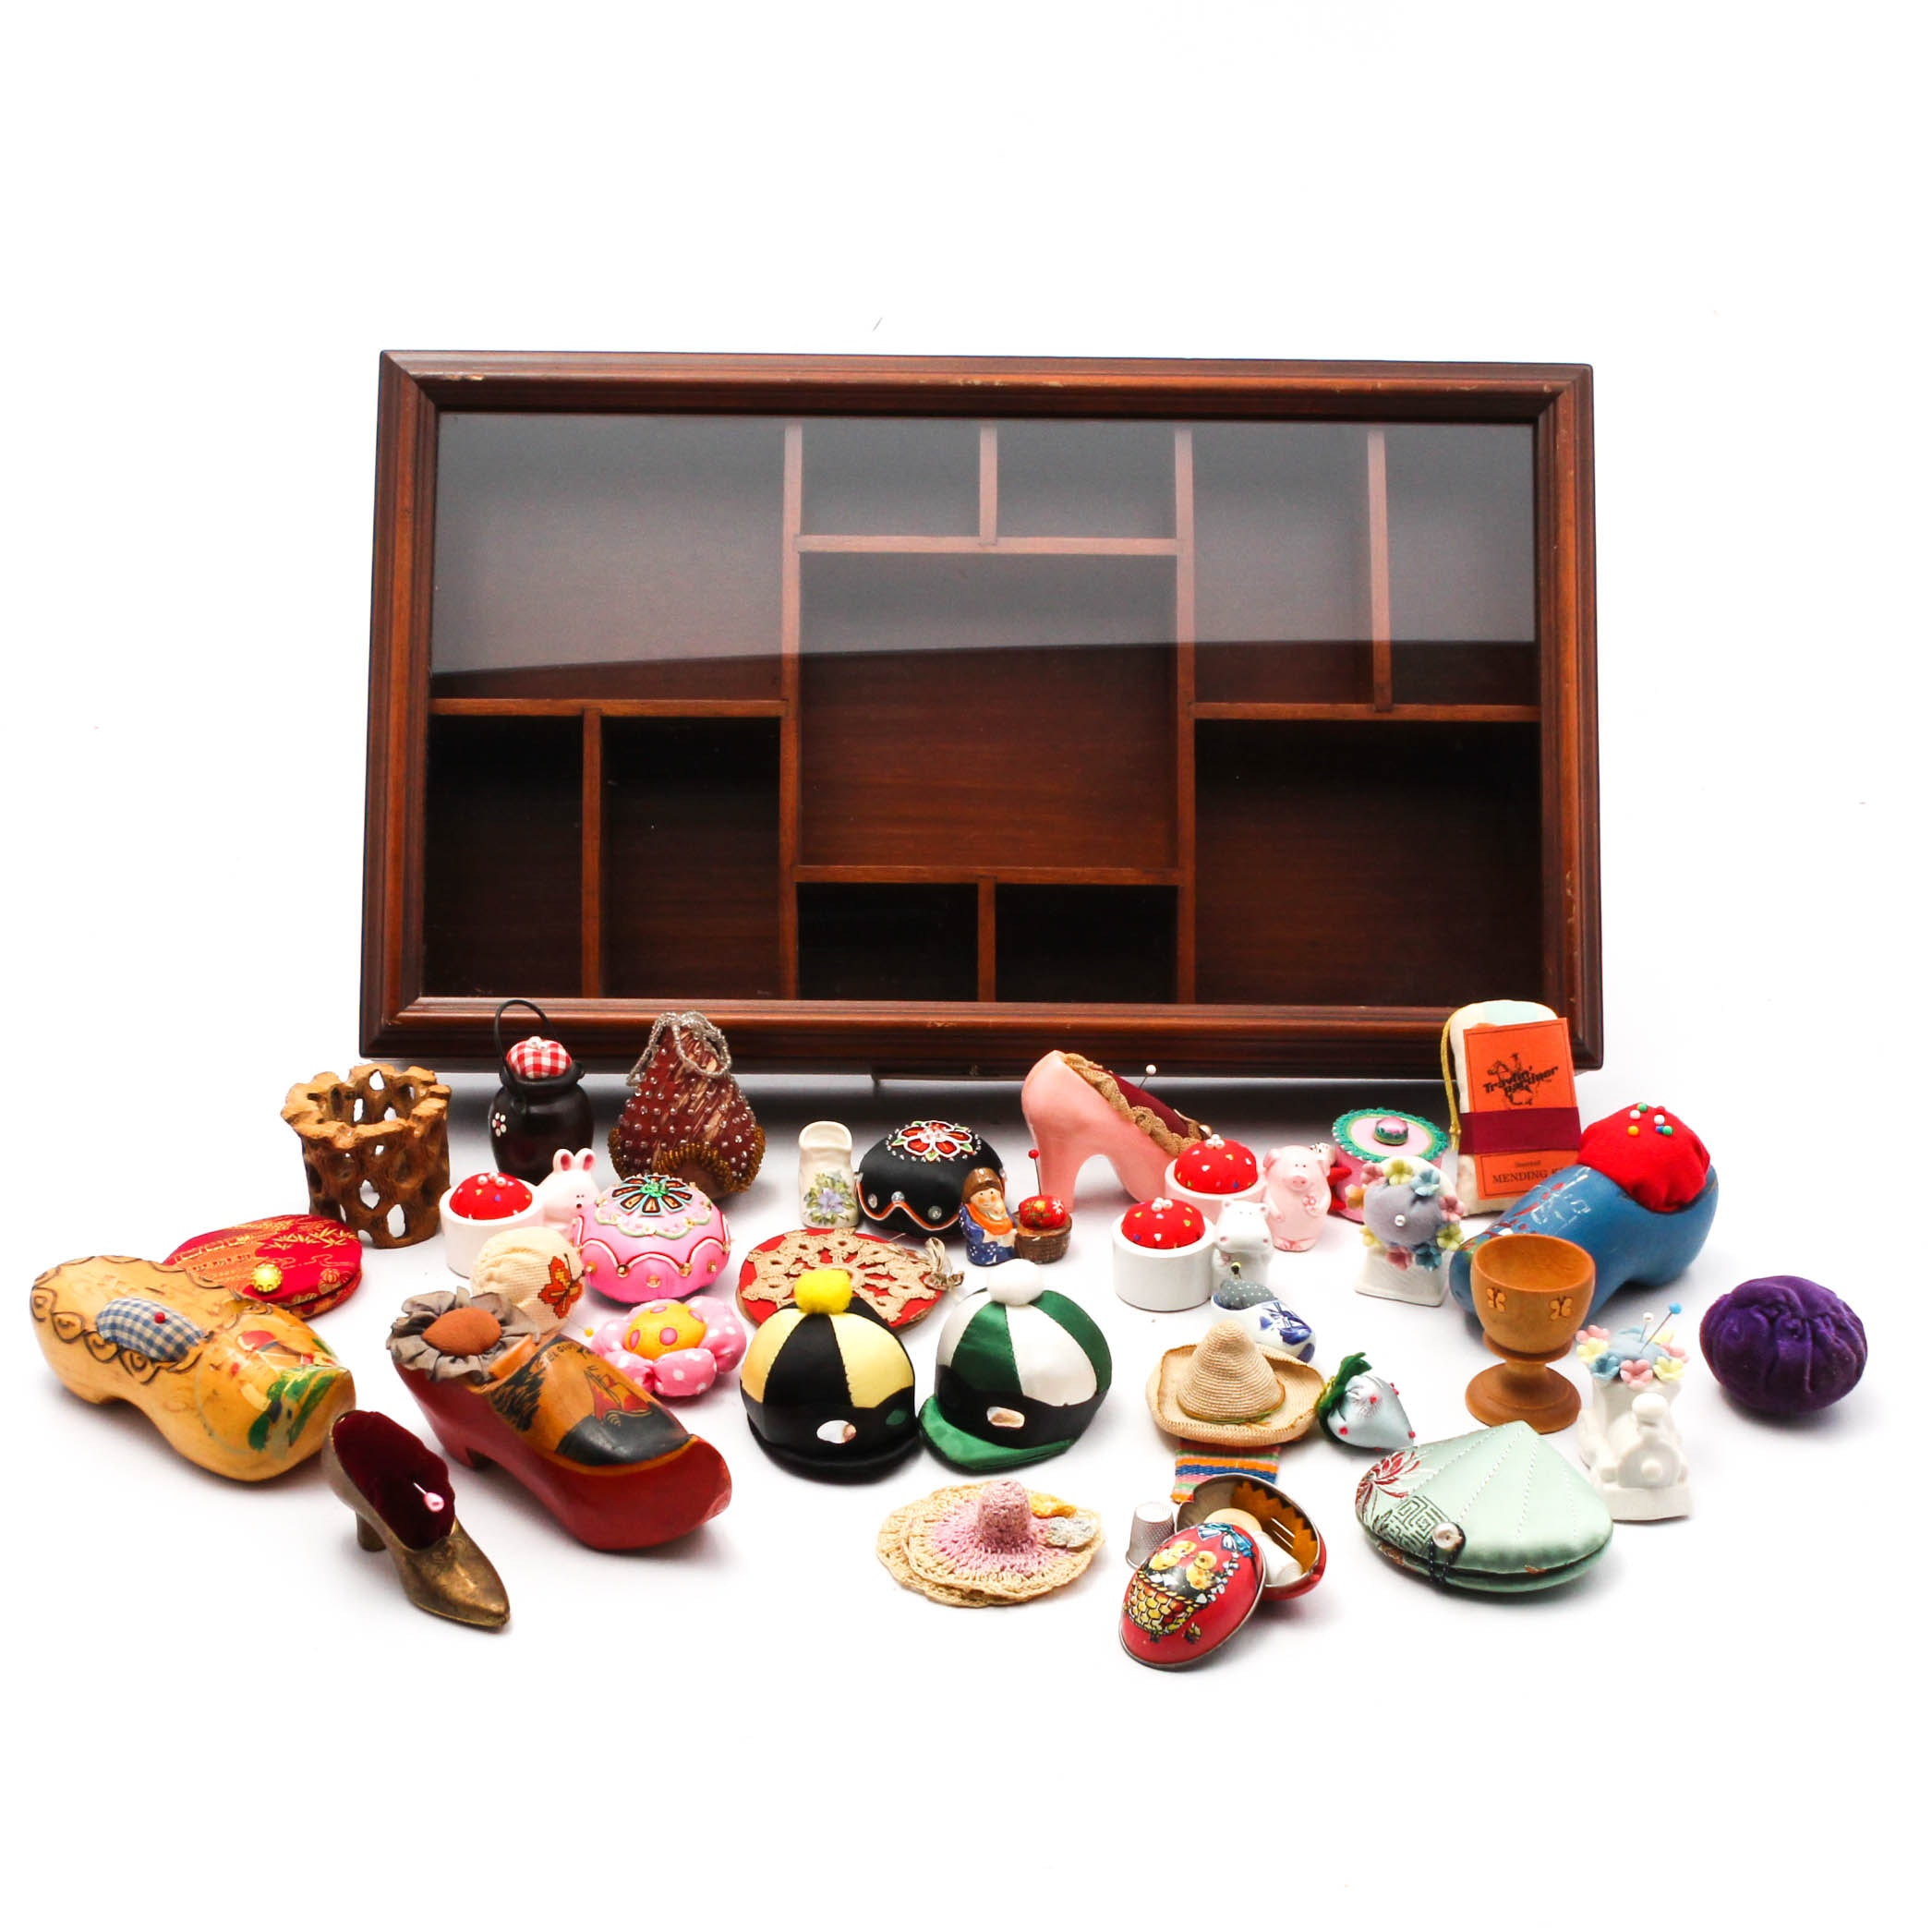 Sewing Collectibles and Display Case